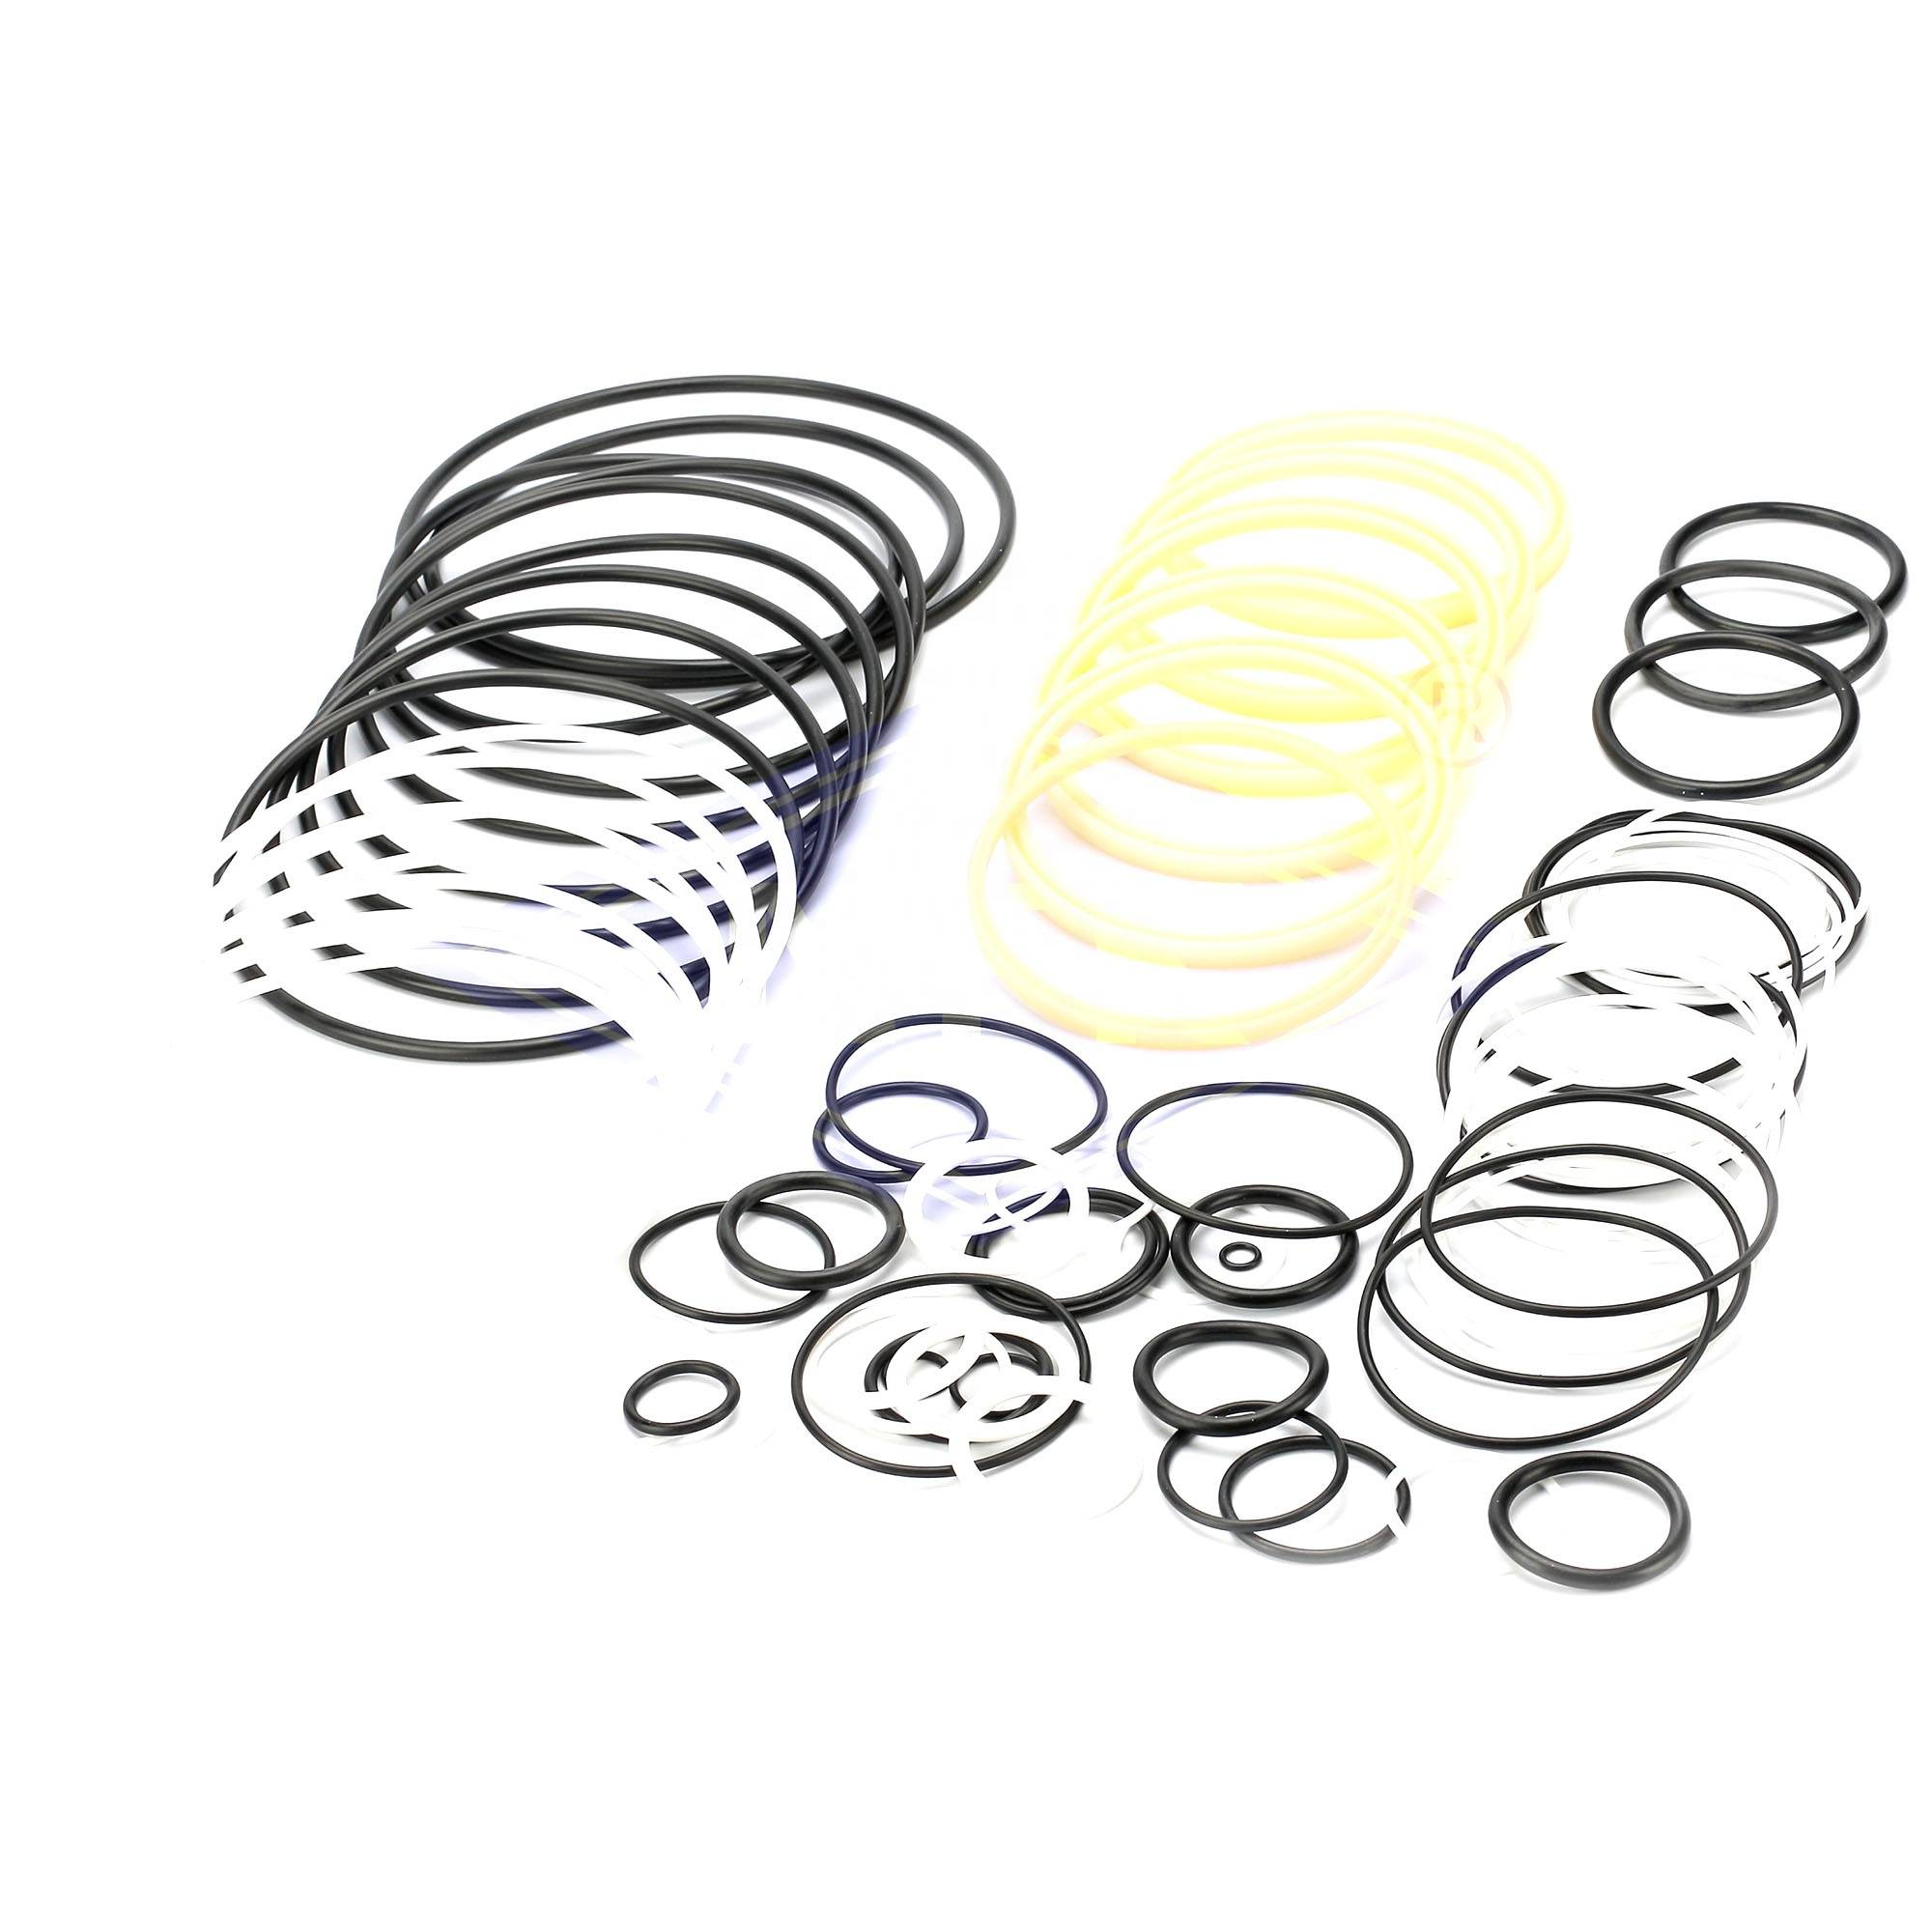 Discountable price Hb20g Seal Kit - DEMO 210 DEMO230 DEMO140 Hydraulic Seal Kit Hammer Breaker Seal kit Excavator Parts Seal Kits – Monteono